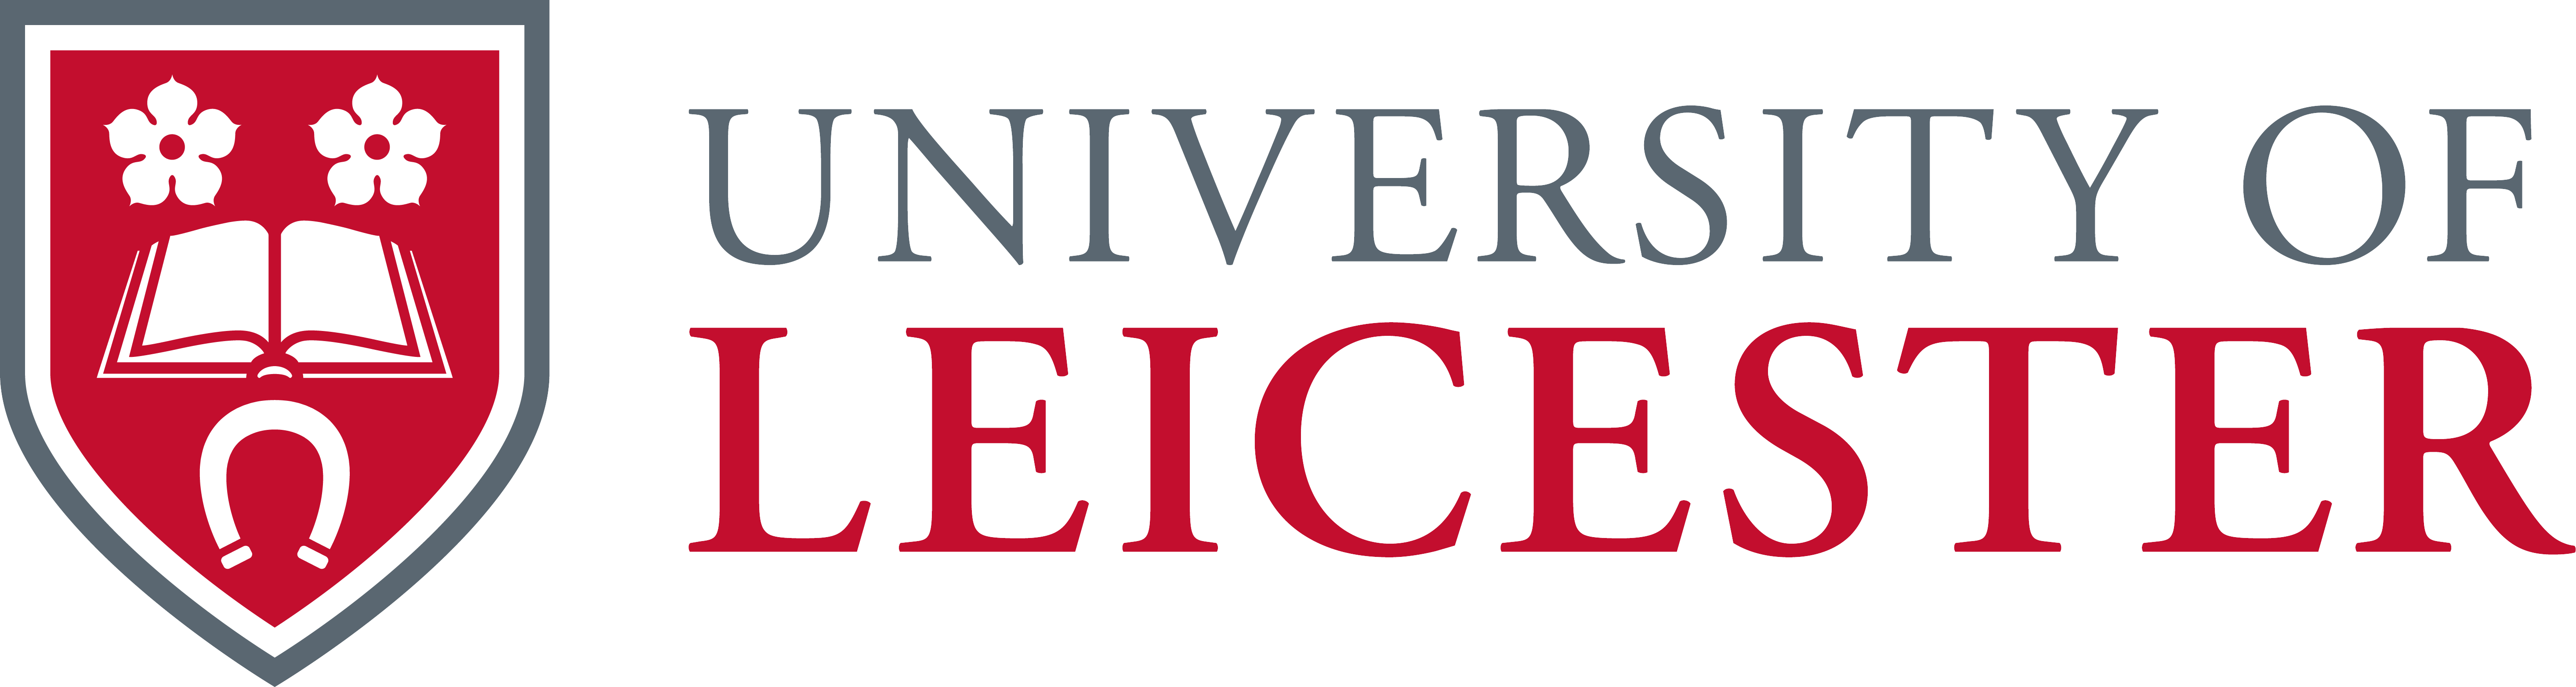 University of Leicester logo